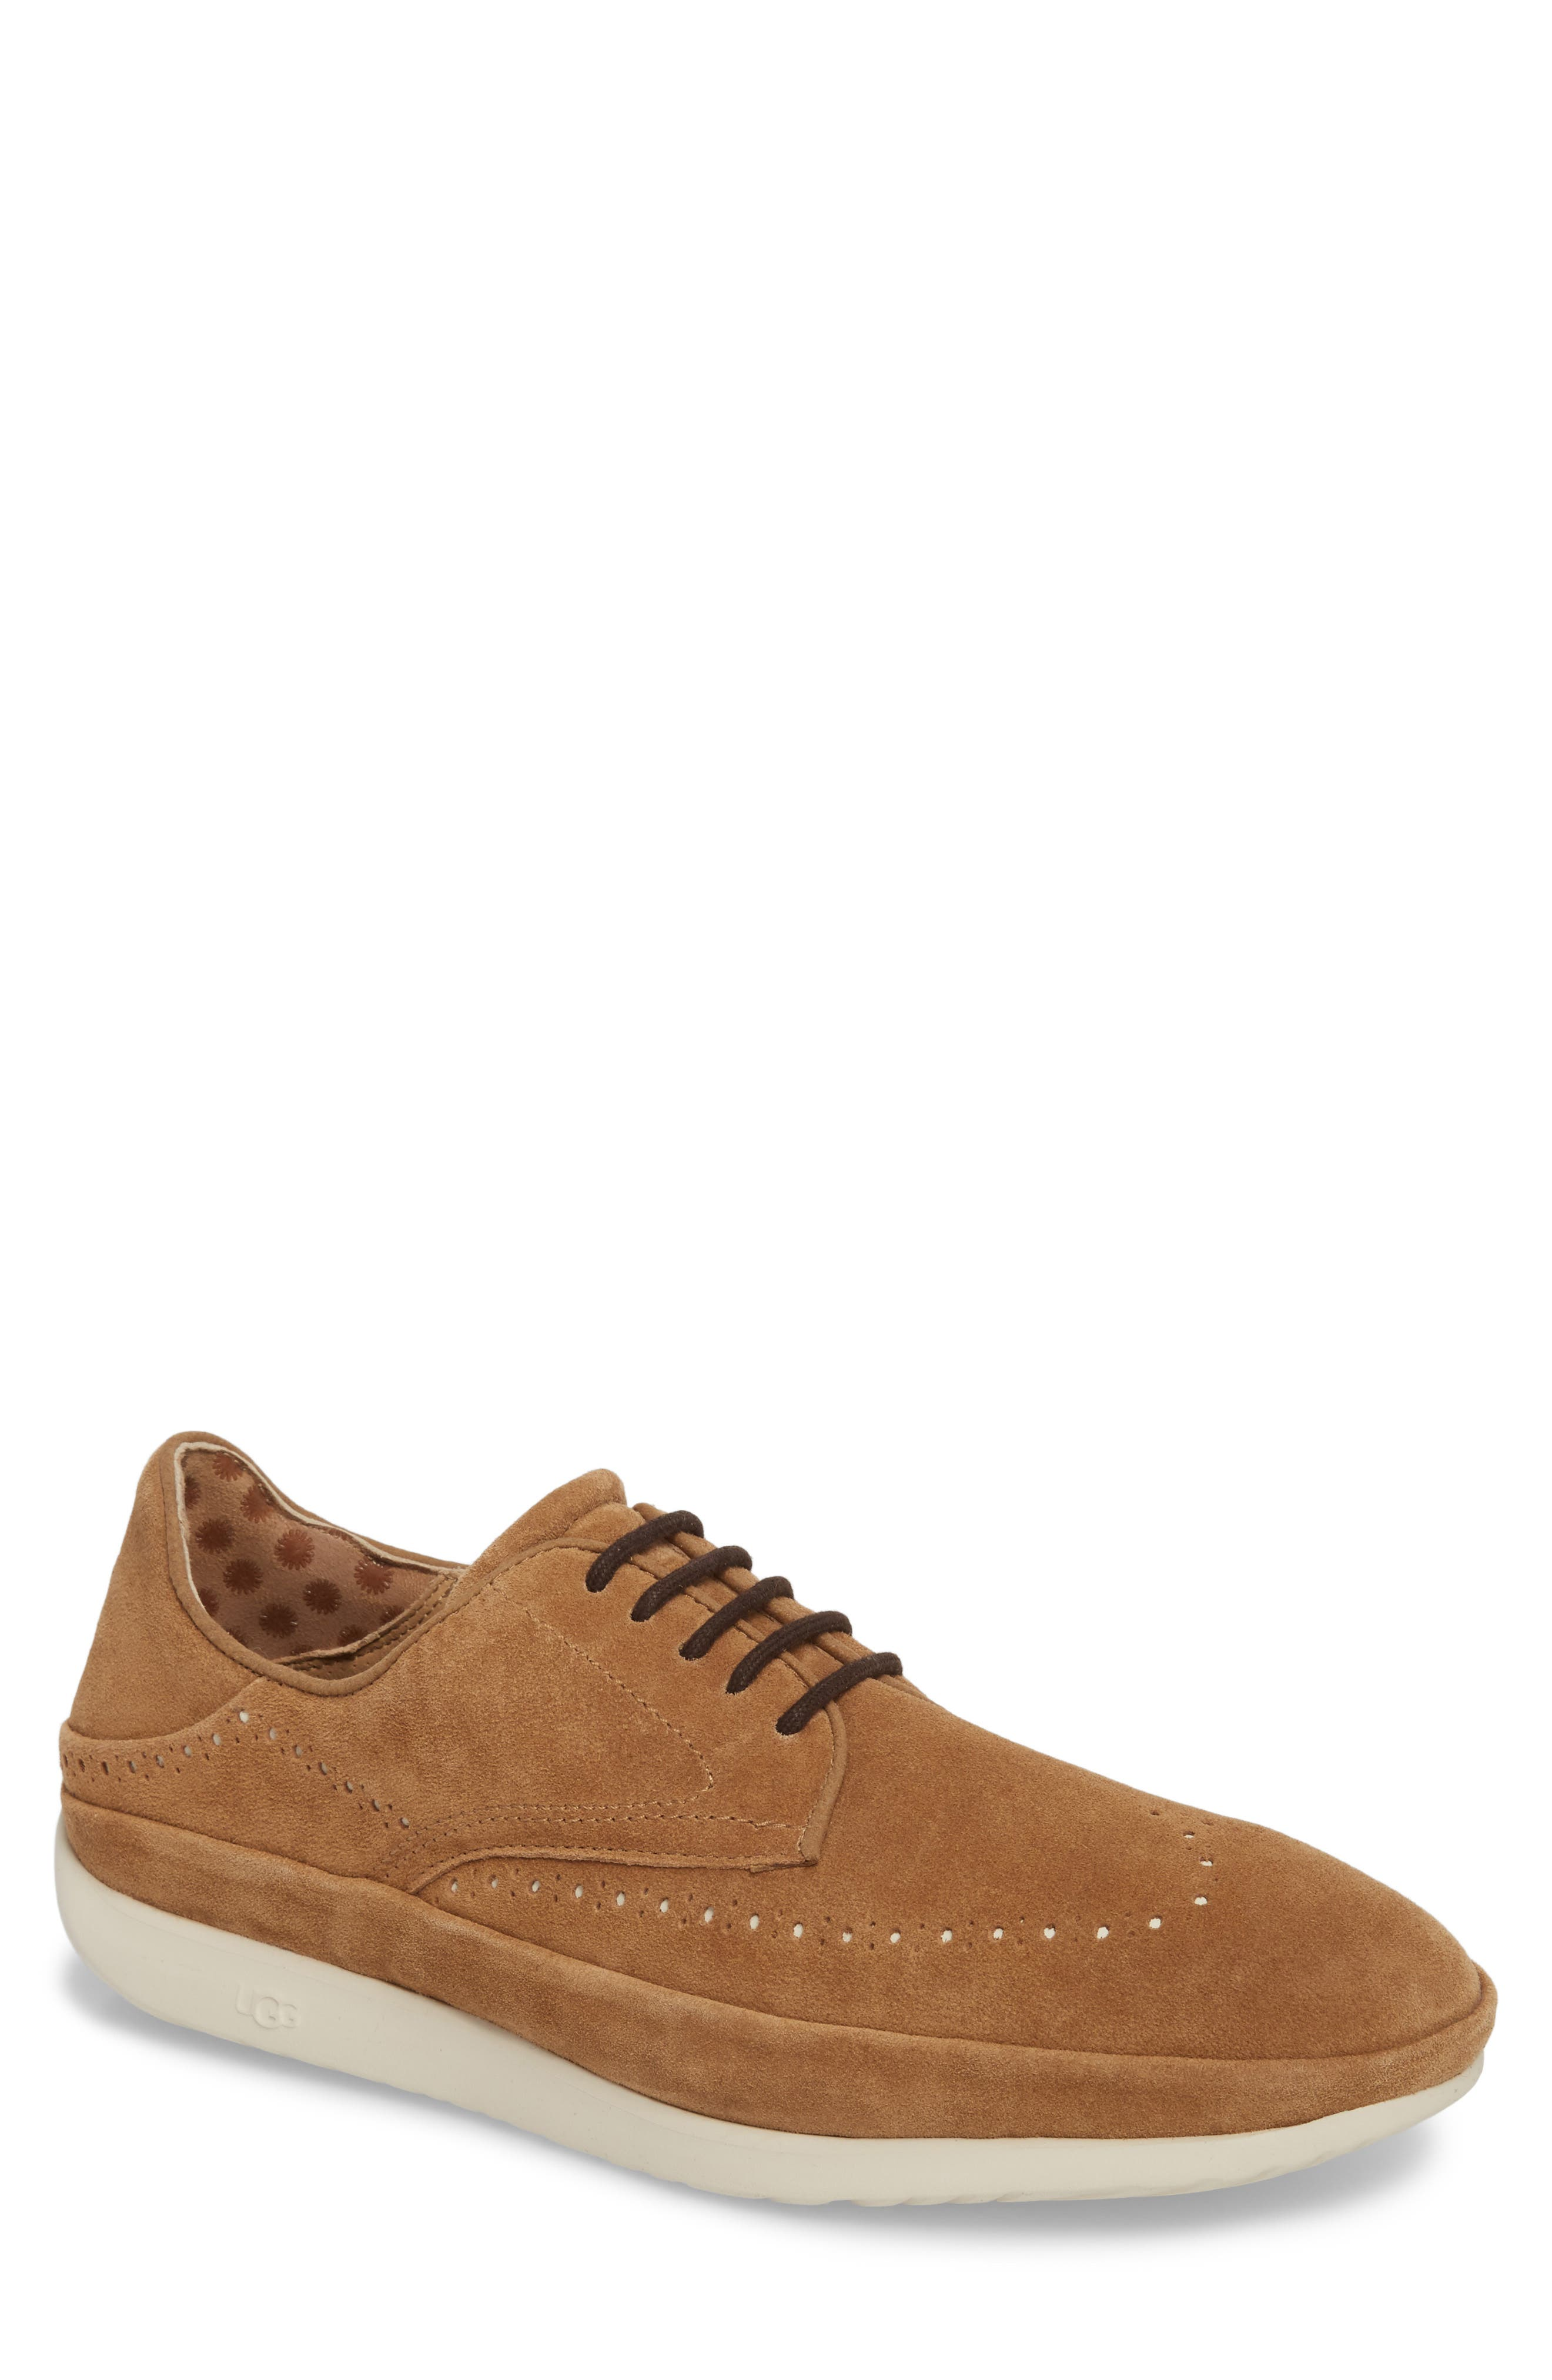 Cali Collapsible Wingtip Derby,                             Main thumbnail 1, color,                             CHESTNUT LEATHER